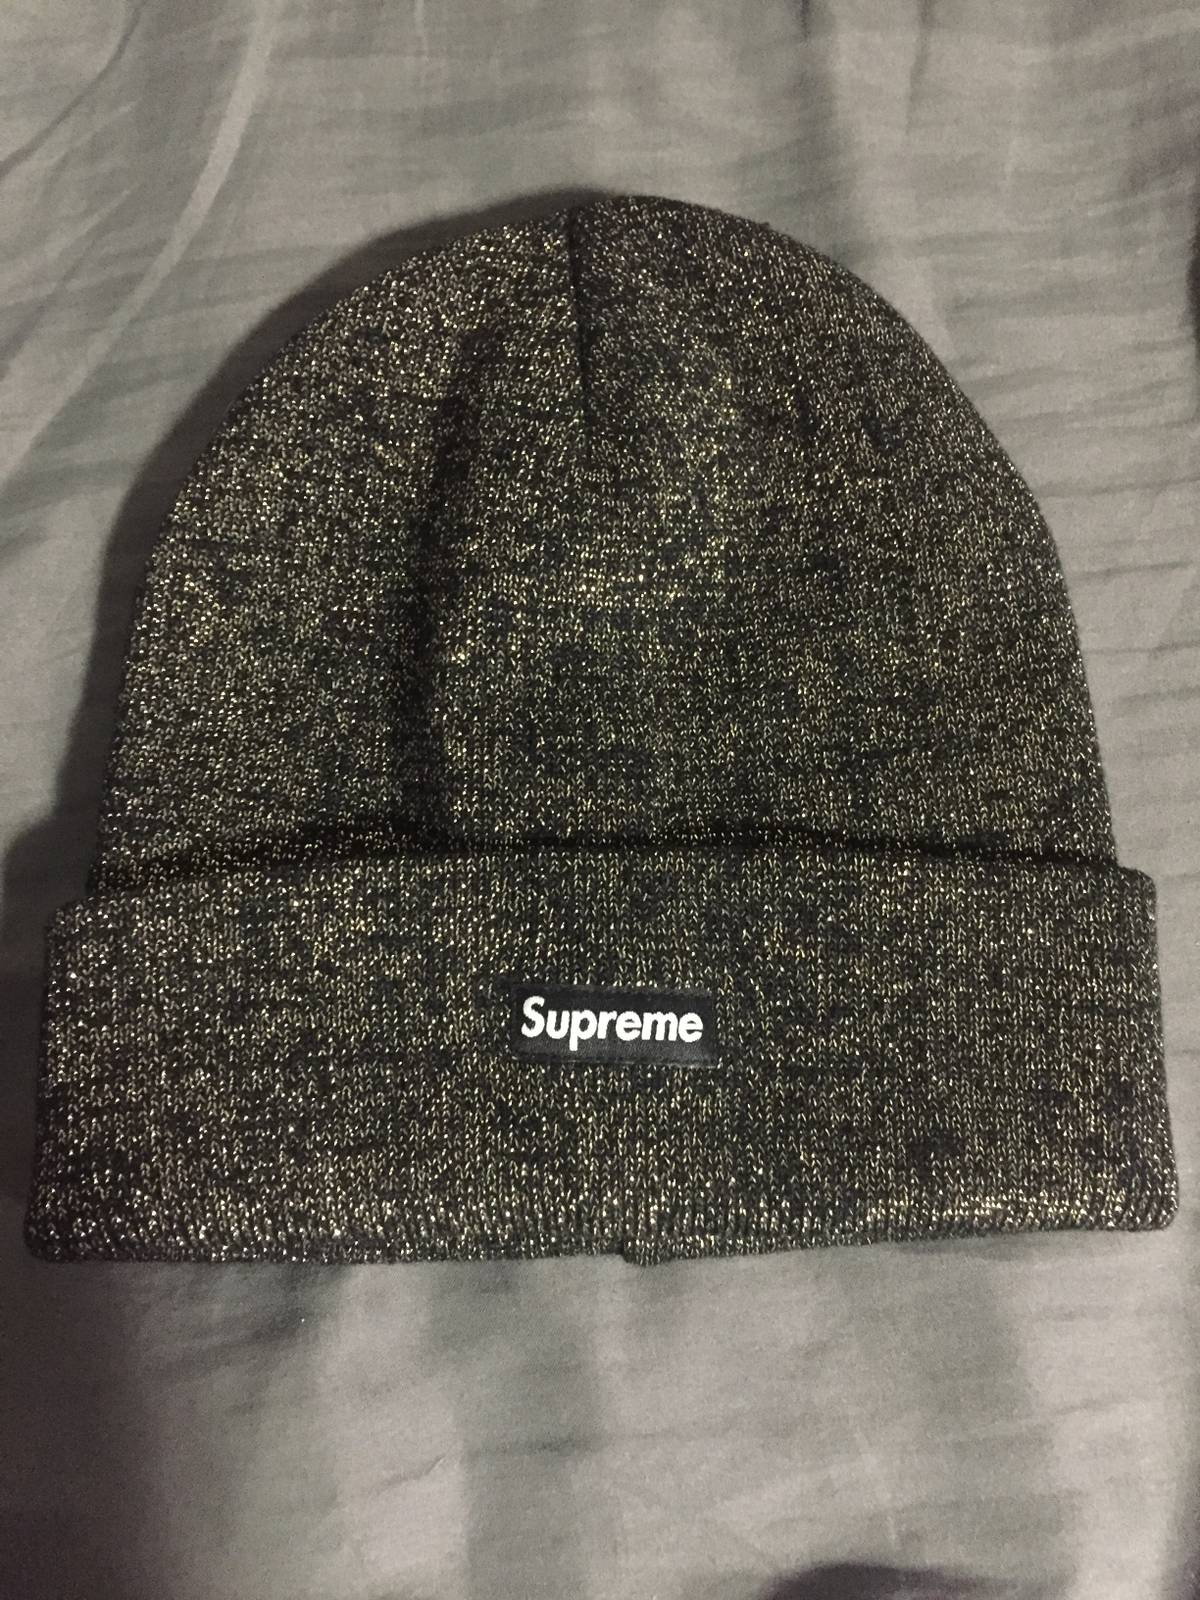 a9afec0606d Supreme Black Tinsel Beanie Size one size - Hats for Sale - Grailed